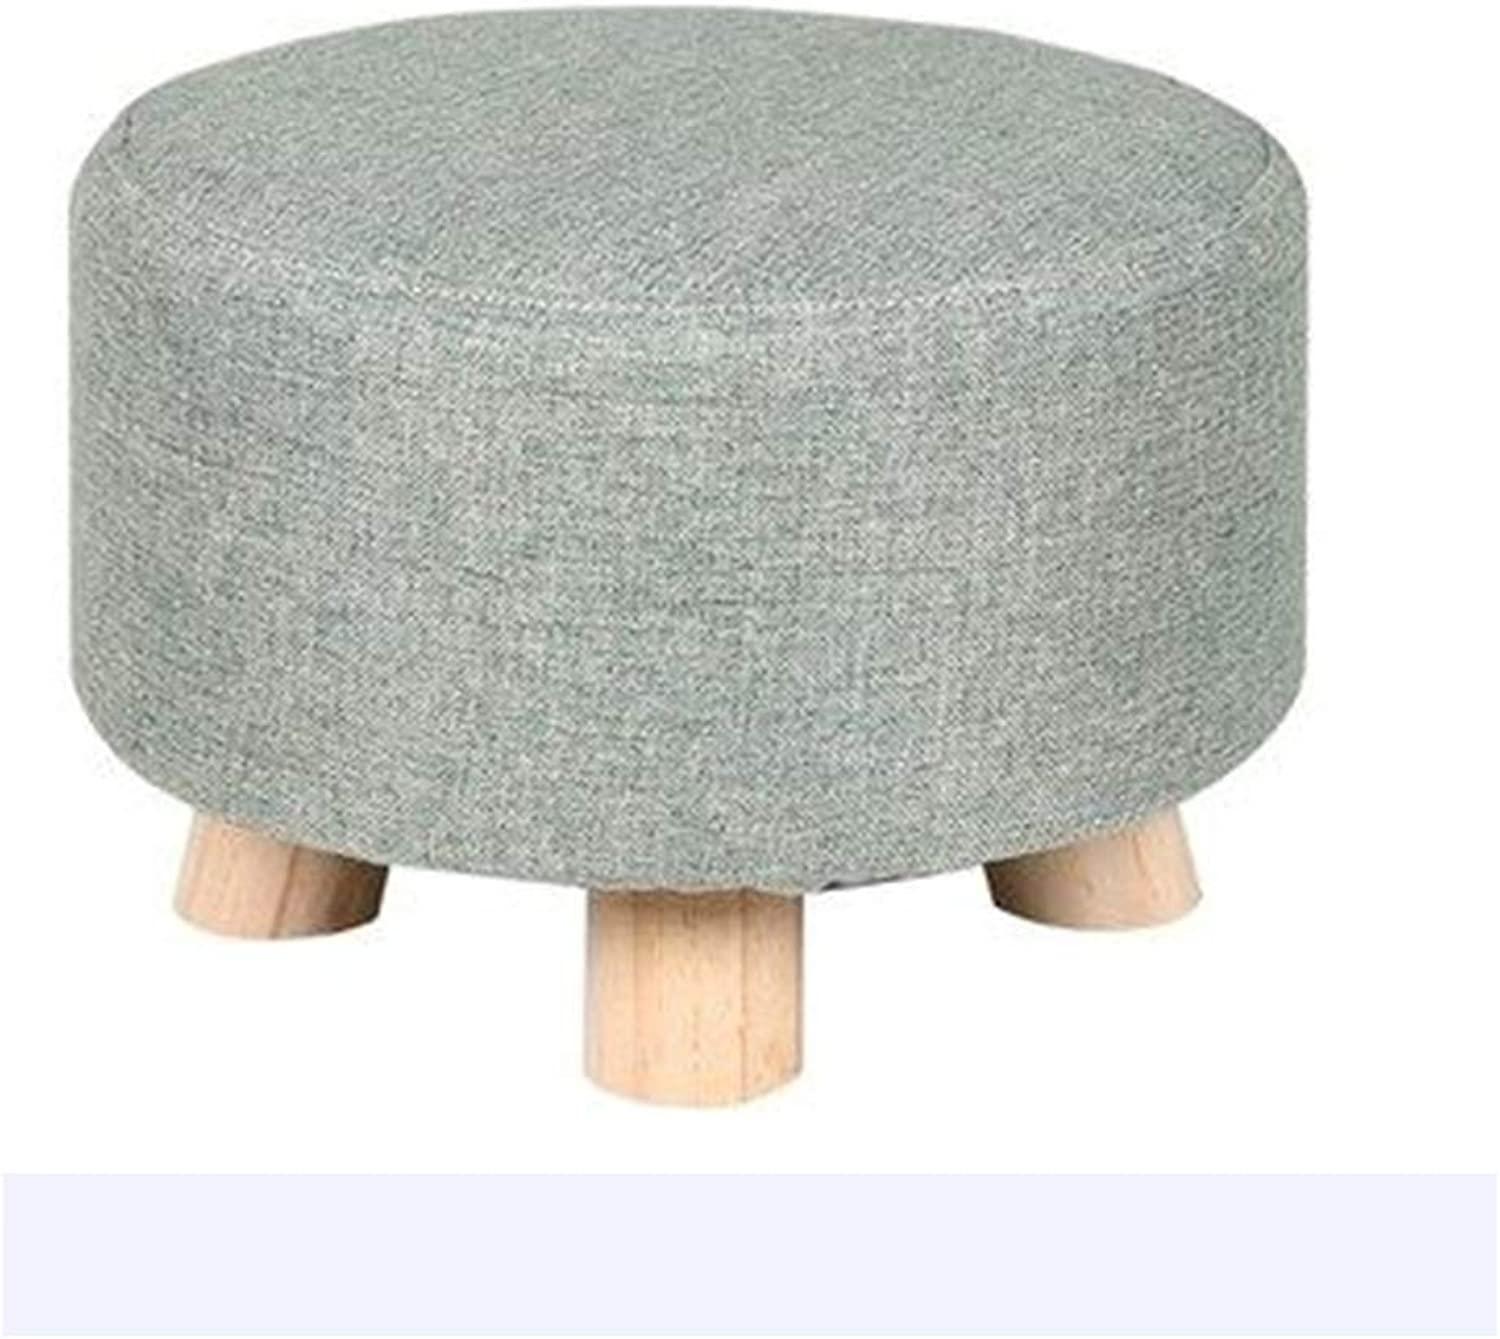 RHHWJJXB Solid Wood Stool Home Fashion Creative Small Stools Change shoes Stool Living Room Mound Bench Fabric Stool (color   B)